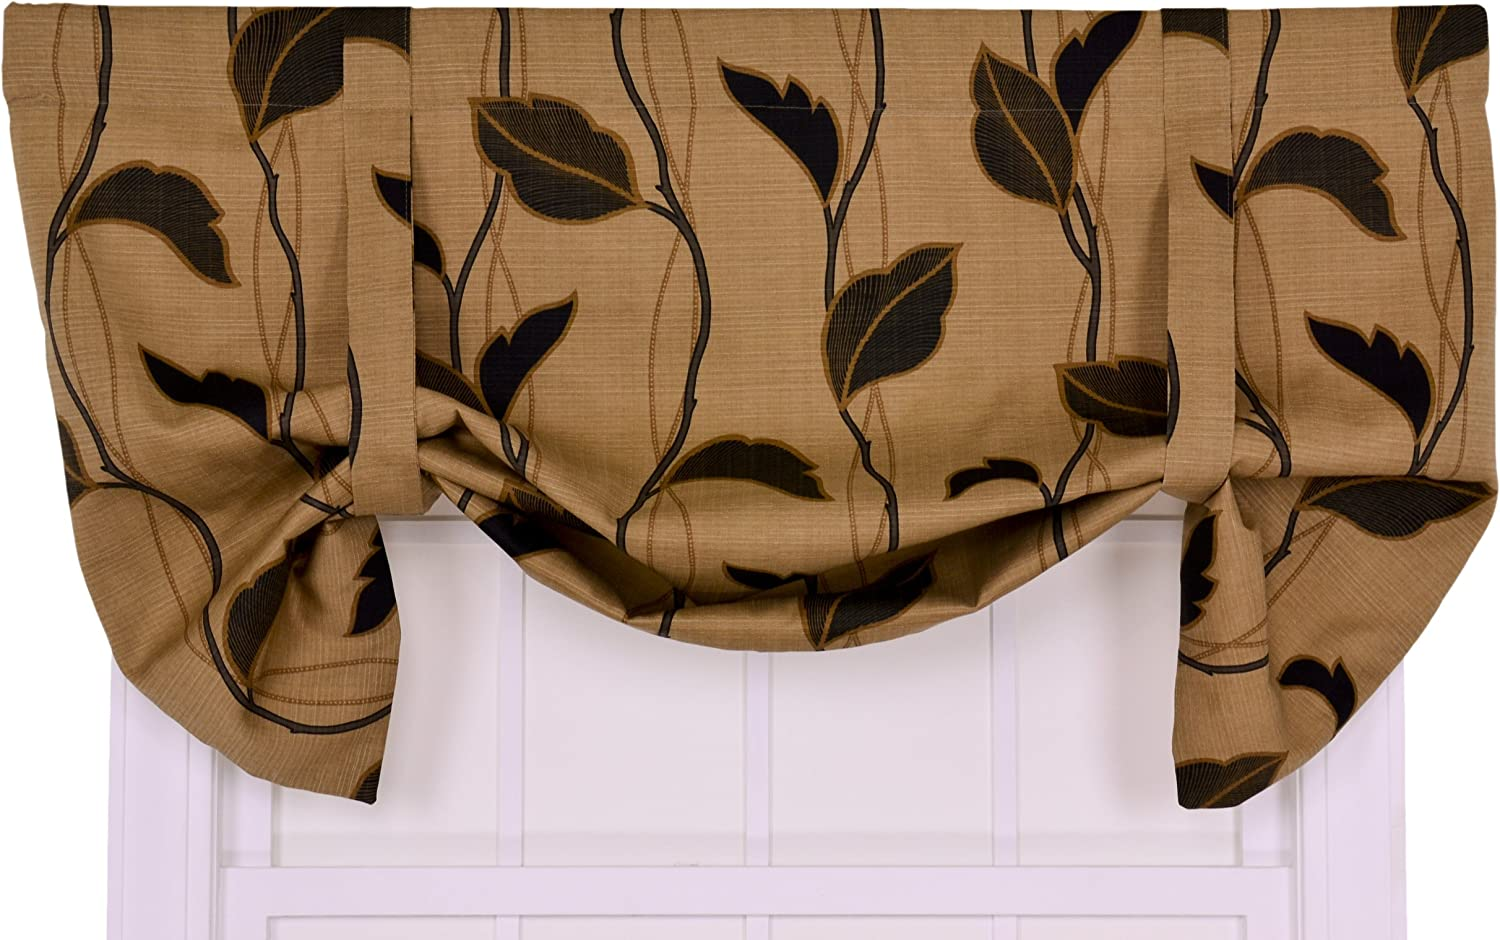 Ellis Curtain Arlington Mall Riviera Large Scale Leaf Lined Val and specialty shop Vine Tie-Up